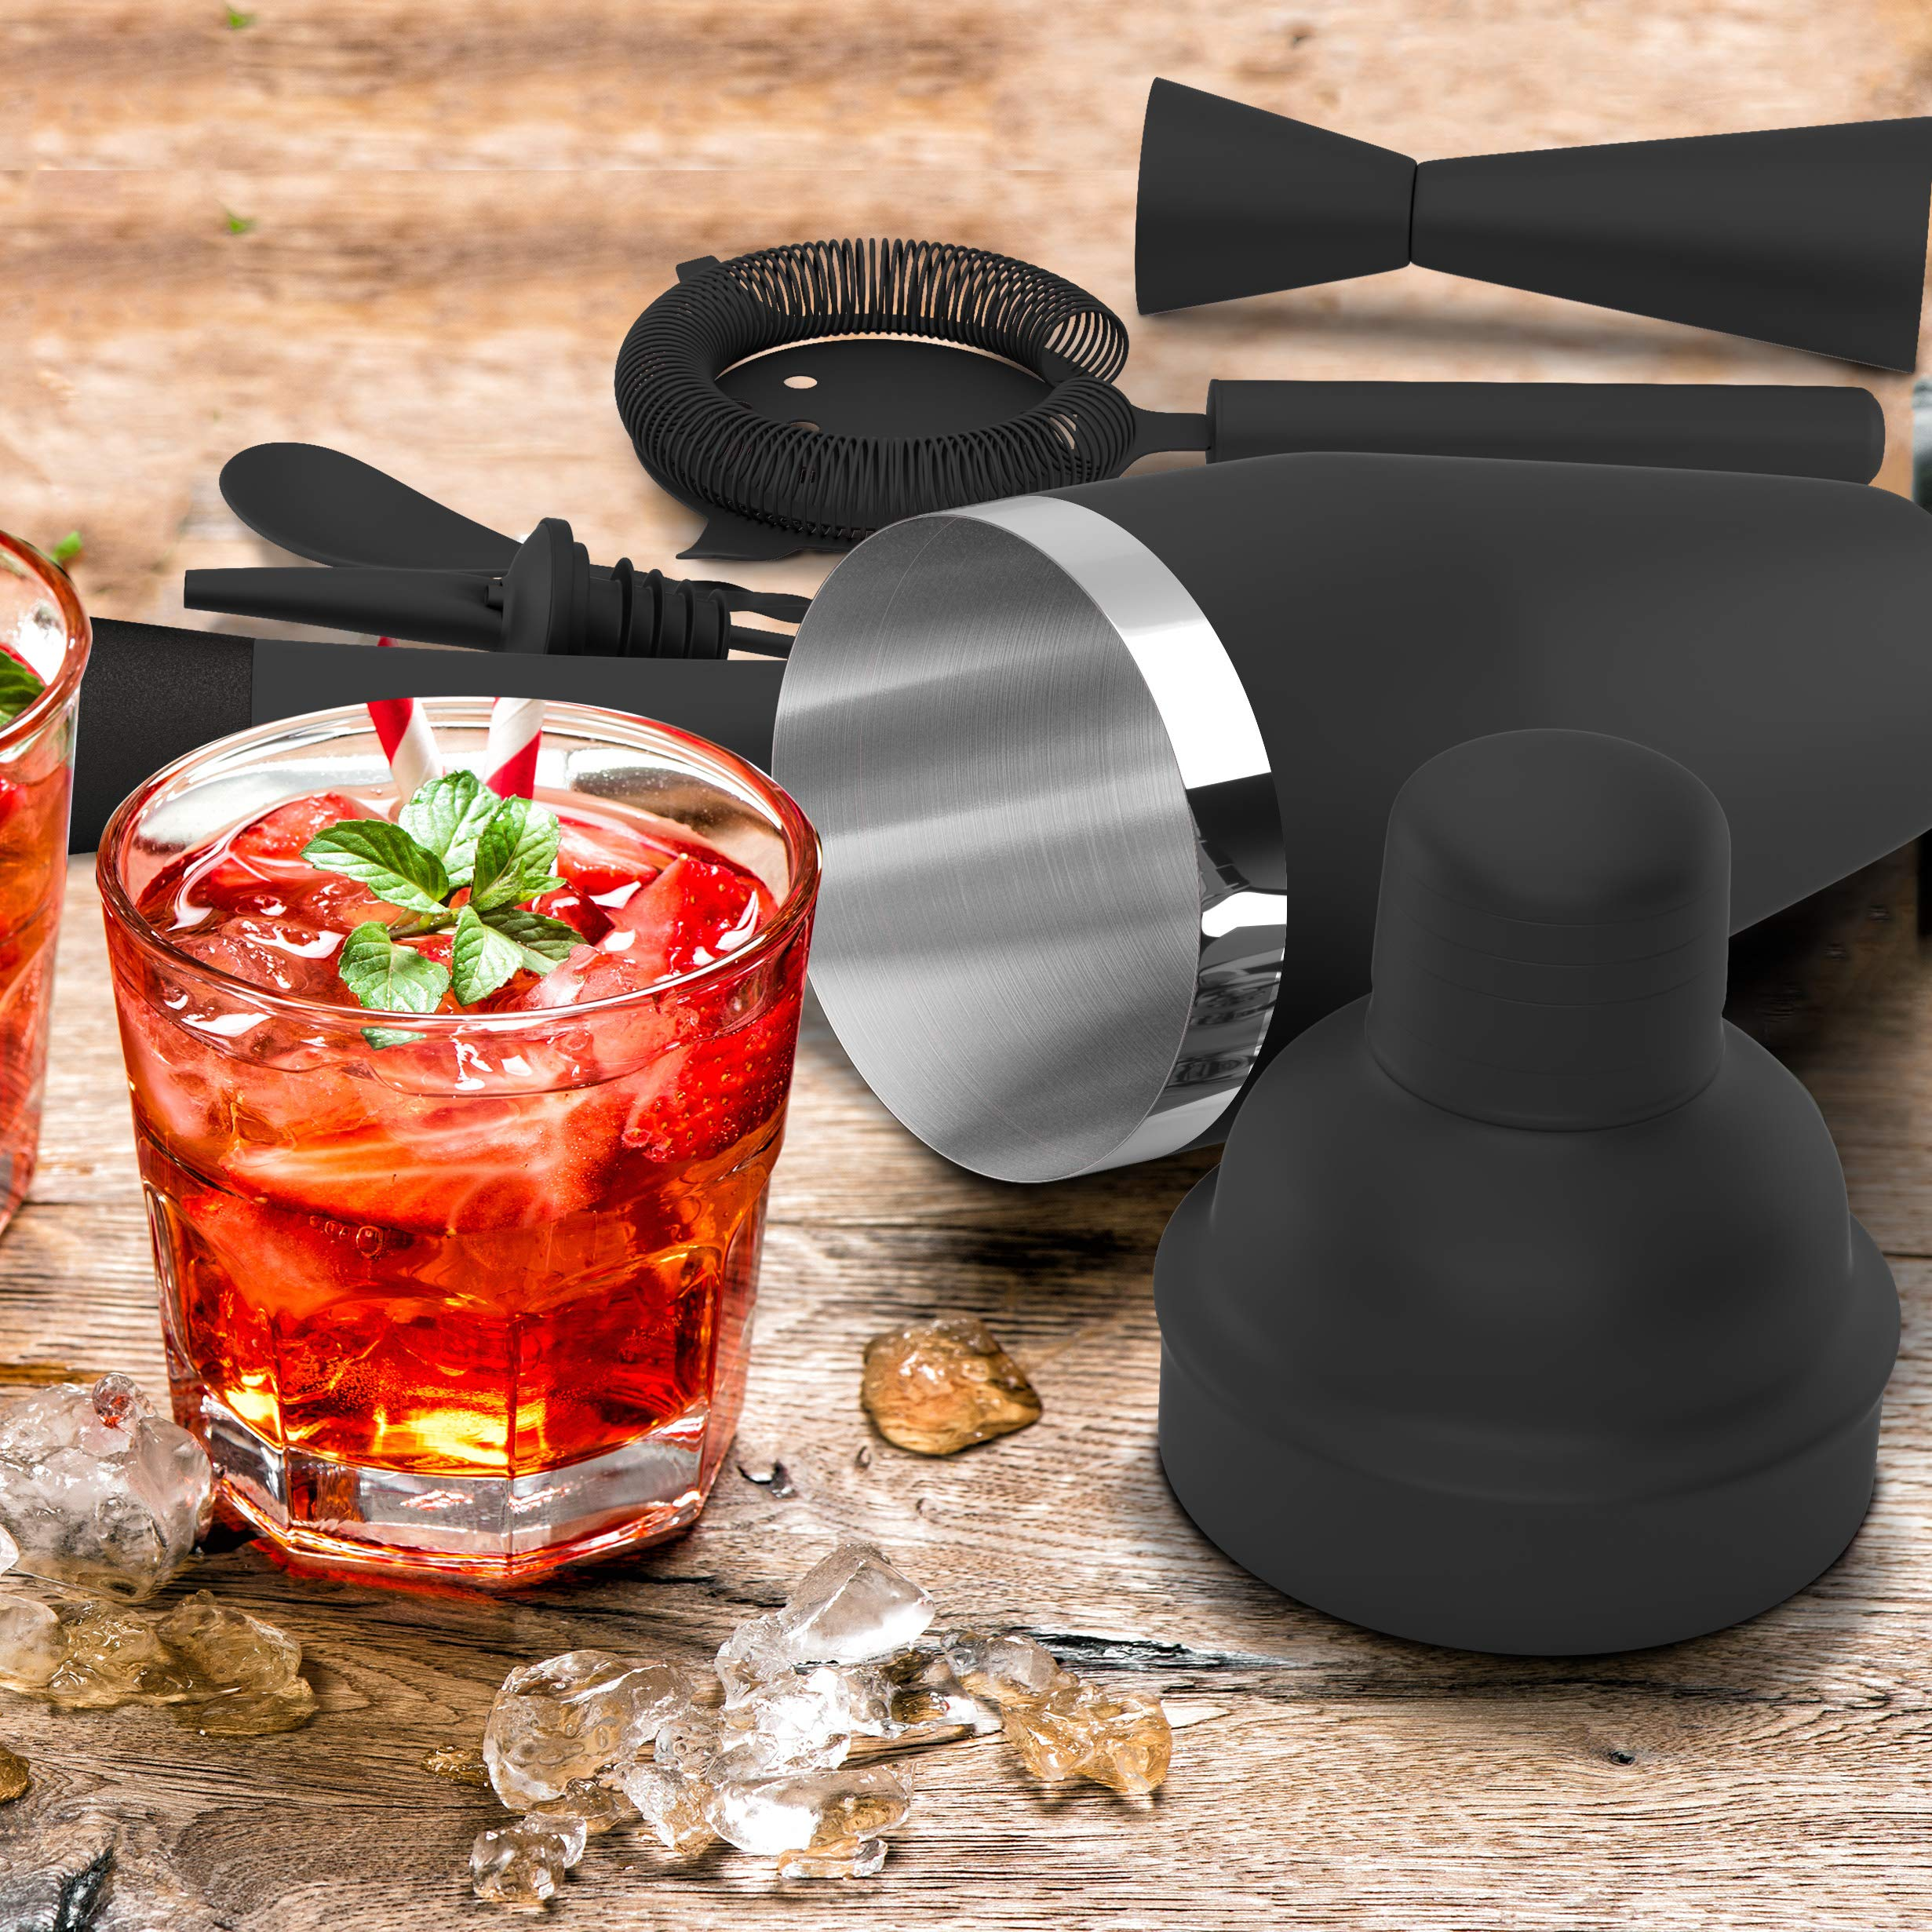 All-inclusive Bar Set | Professional Home Bartender Cocktail Shaker Set | Includes a Recipe Book & All Necessary Bar Tools and Accessories | Impressive Gift for Men! (Matte Black) by Royexe (Image #3)